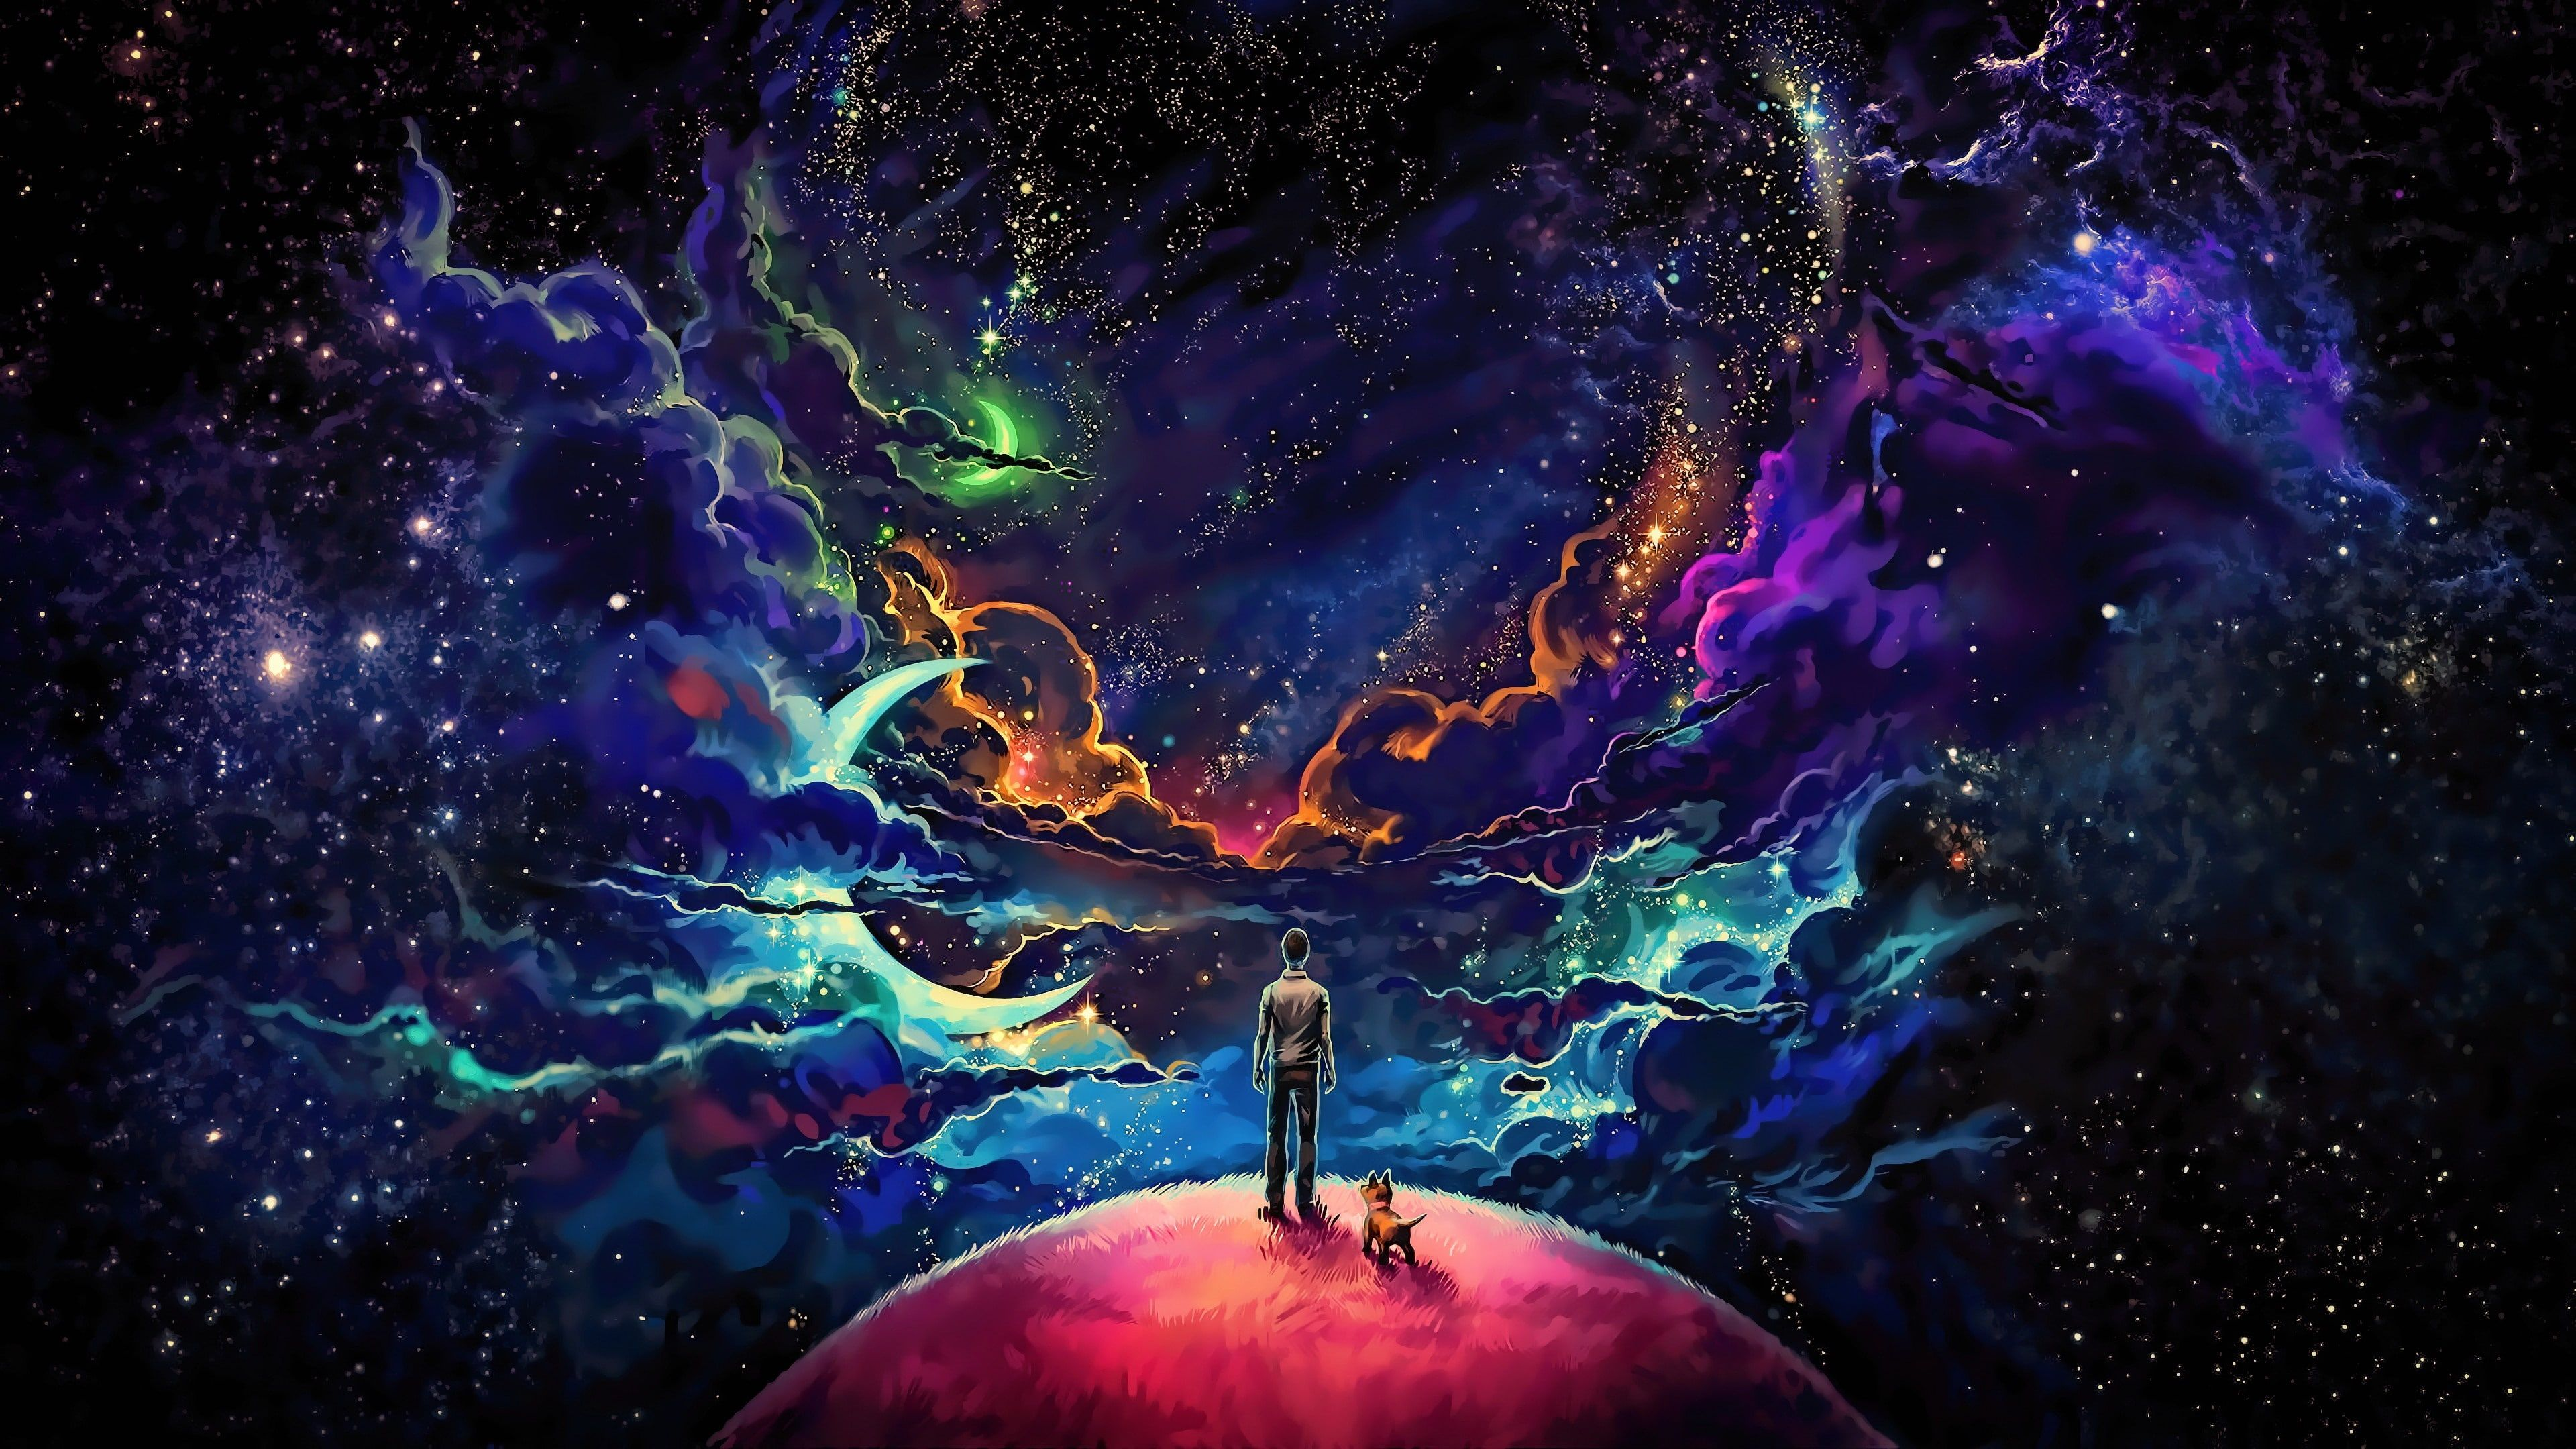 Little Prince Universe Science Fiction Fantasy Art Scifi Space Starry Galaxy Imagination Stars Graphics Pla Planet Painting Star Wallpaper Man And Dog